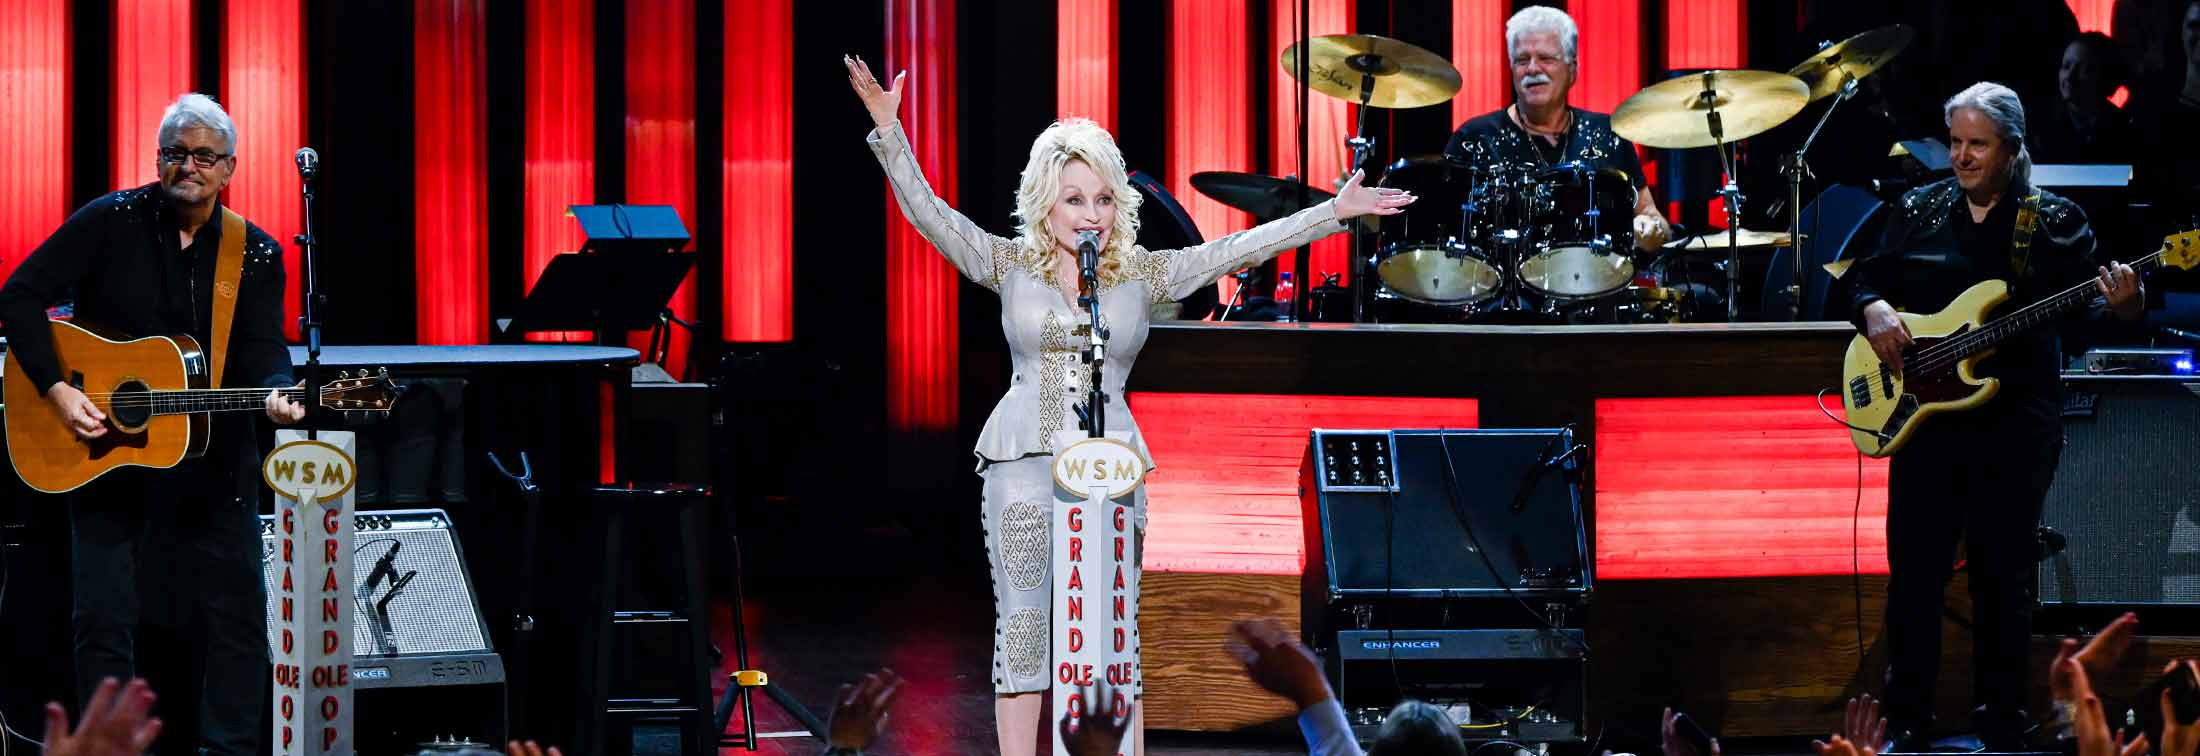 Dolly Parton: 50 Years at the Opry - Celebrating the Queen of country music